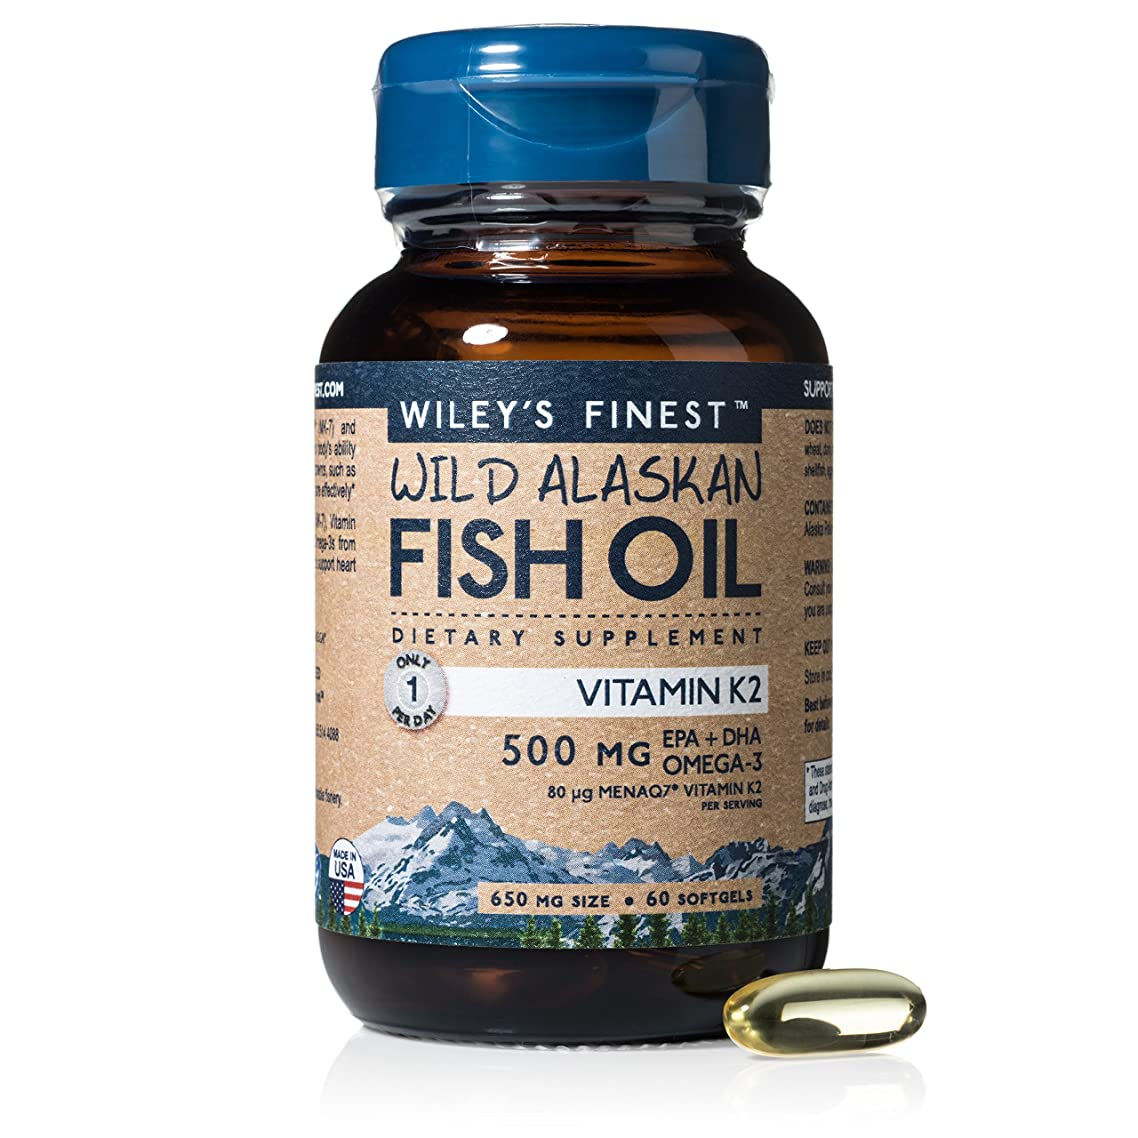 Wiley's Finest Vitamin K2 with MK-7 and D3 500mg EPA + DHA Omega-3 60 Softgels